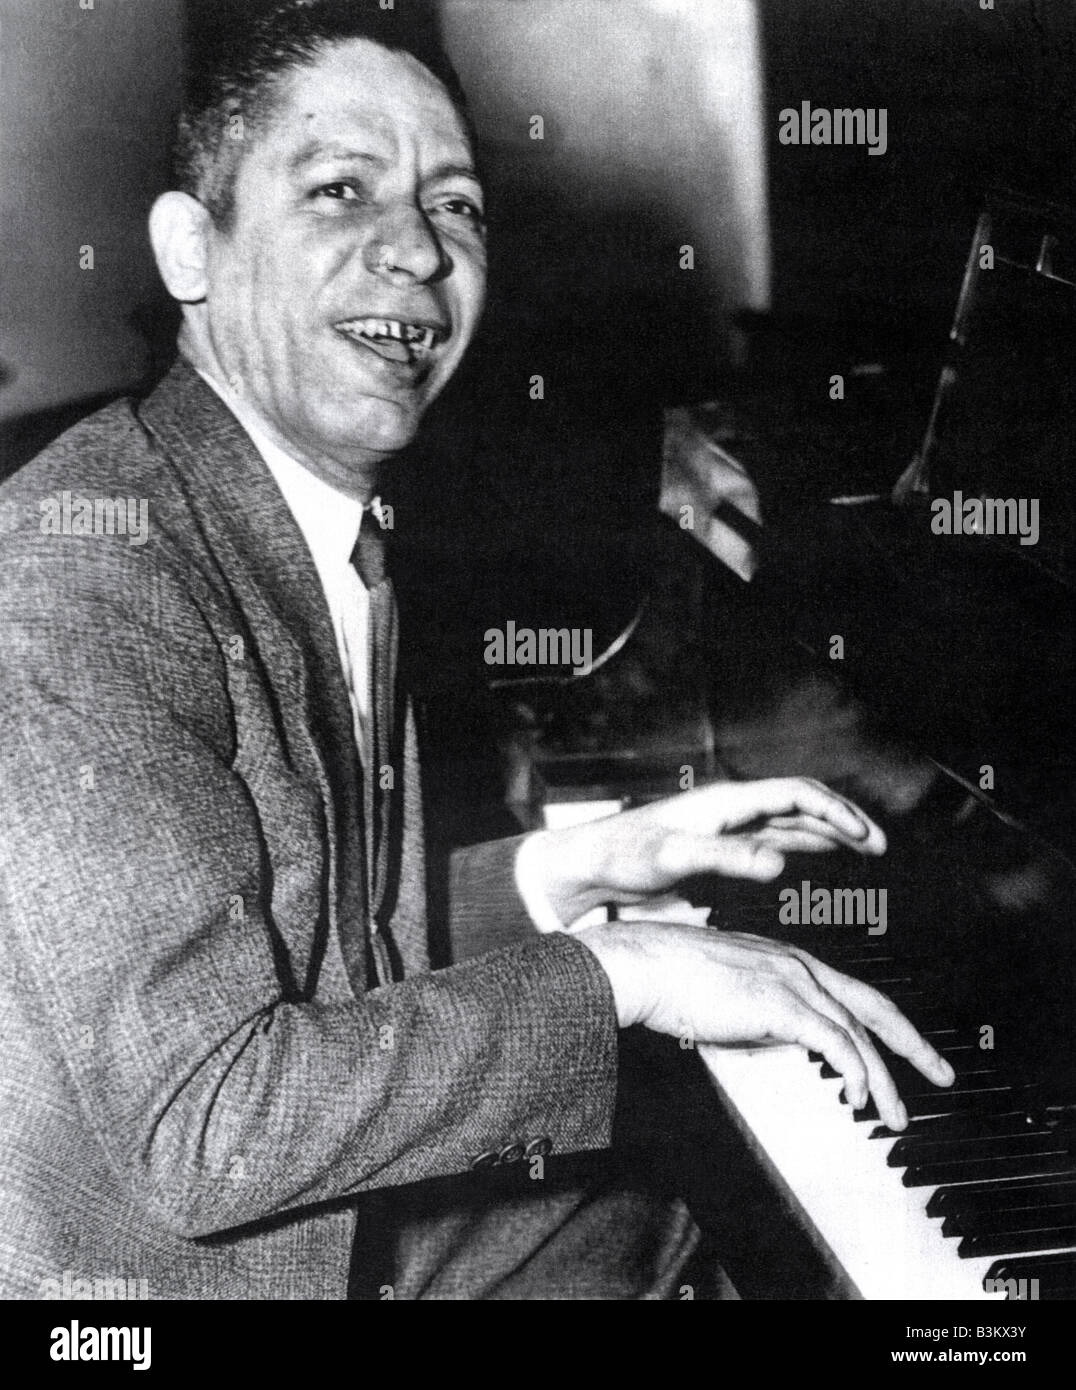 Jelly Roll Morton Us Ragtime Musician About Stock Photo